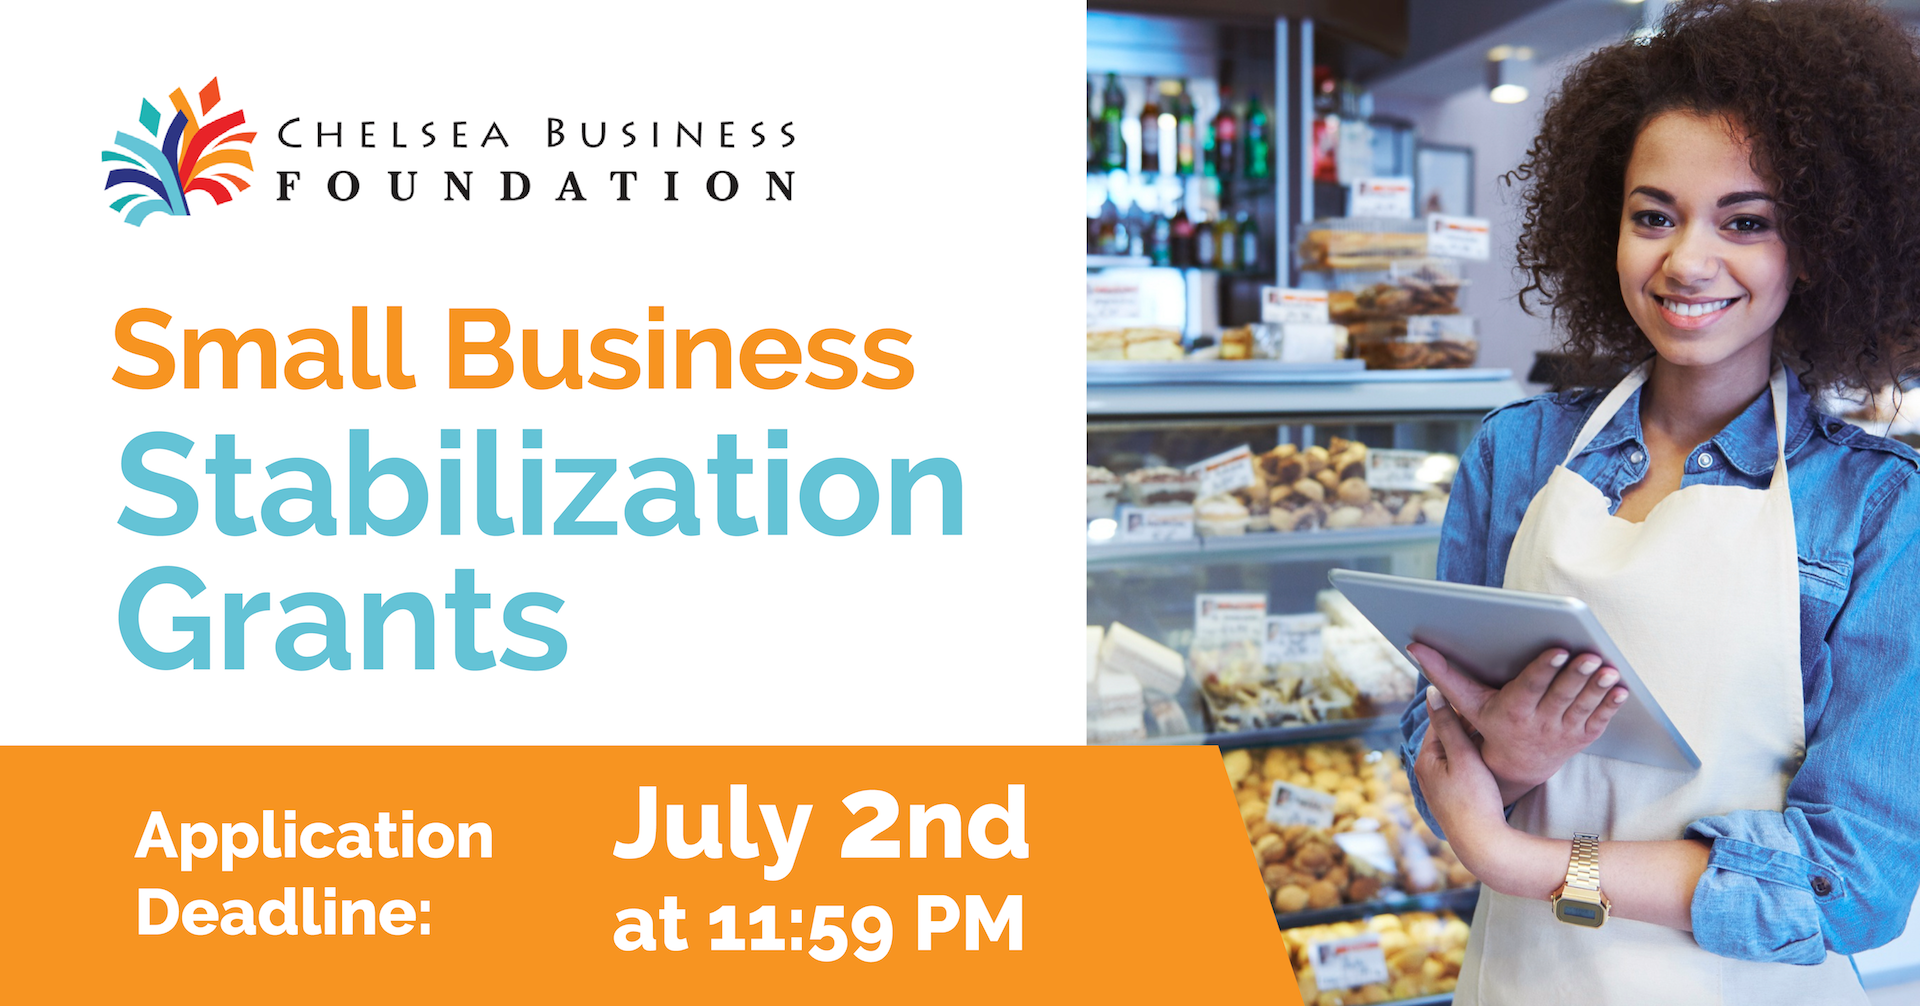 stabilization grants for small businesses located in Chelsea is July 2nd